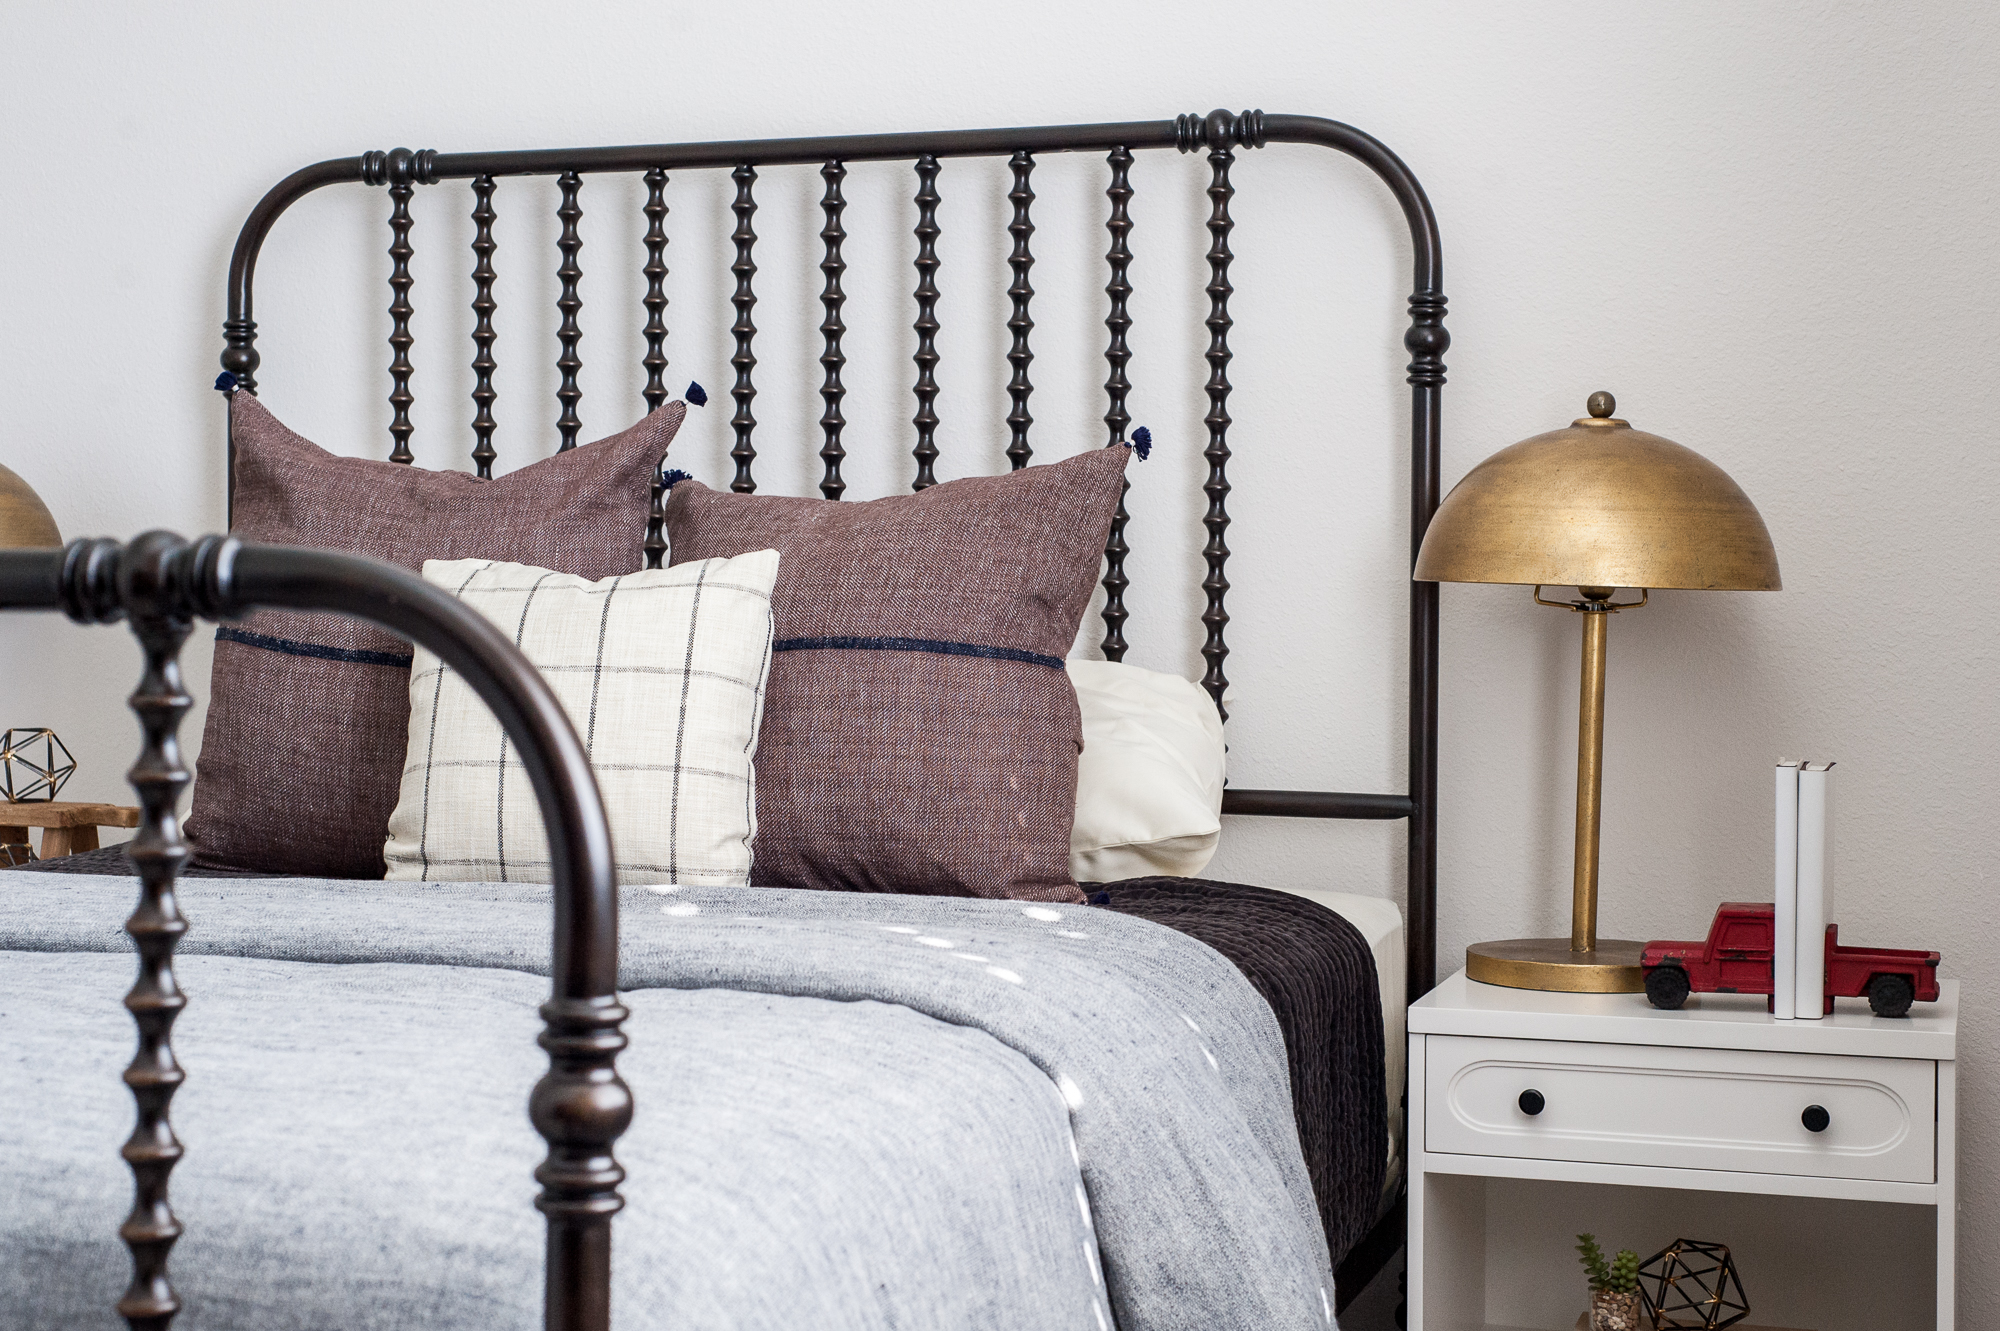 Micamy_Interior Designer_Design_Interior_Model_Merchandising_BoysBedroom_Boys_Camping_McGee&Co_PBTeen_Farmhouse_Universal_Furniture_Styling_SpindleBed_Rustic.jpg